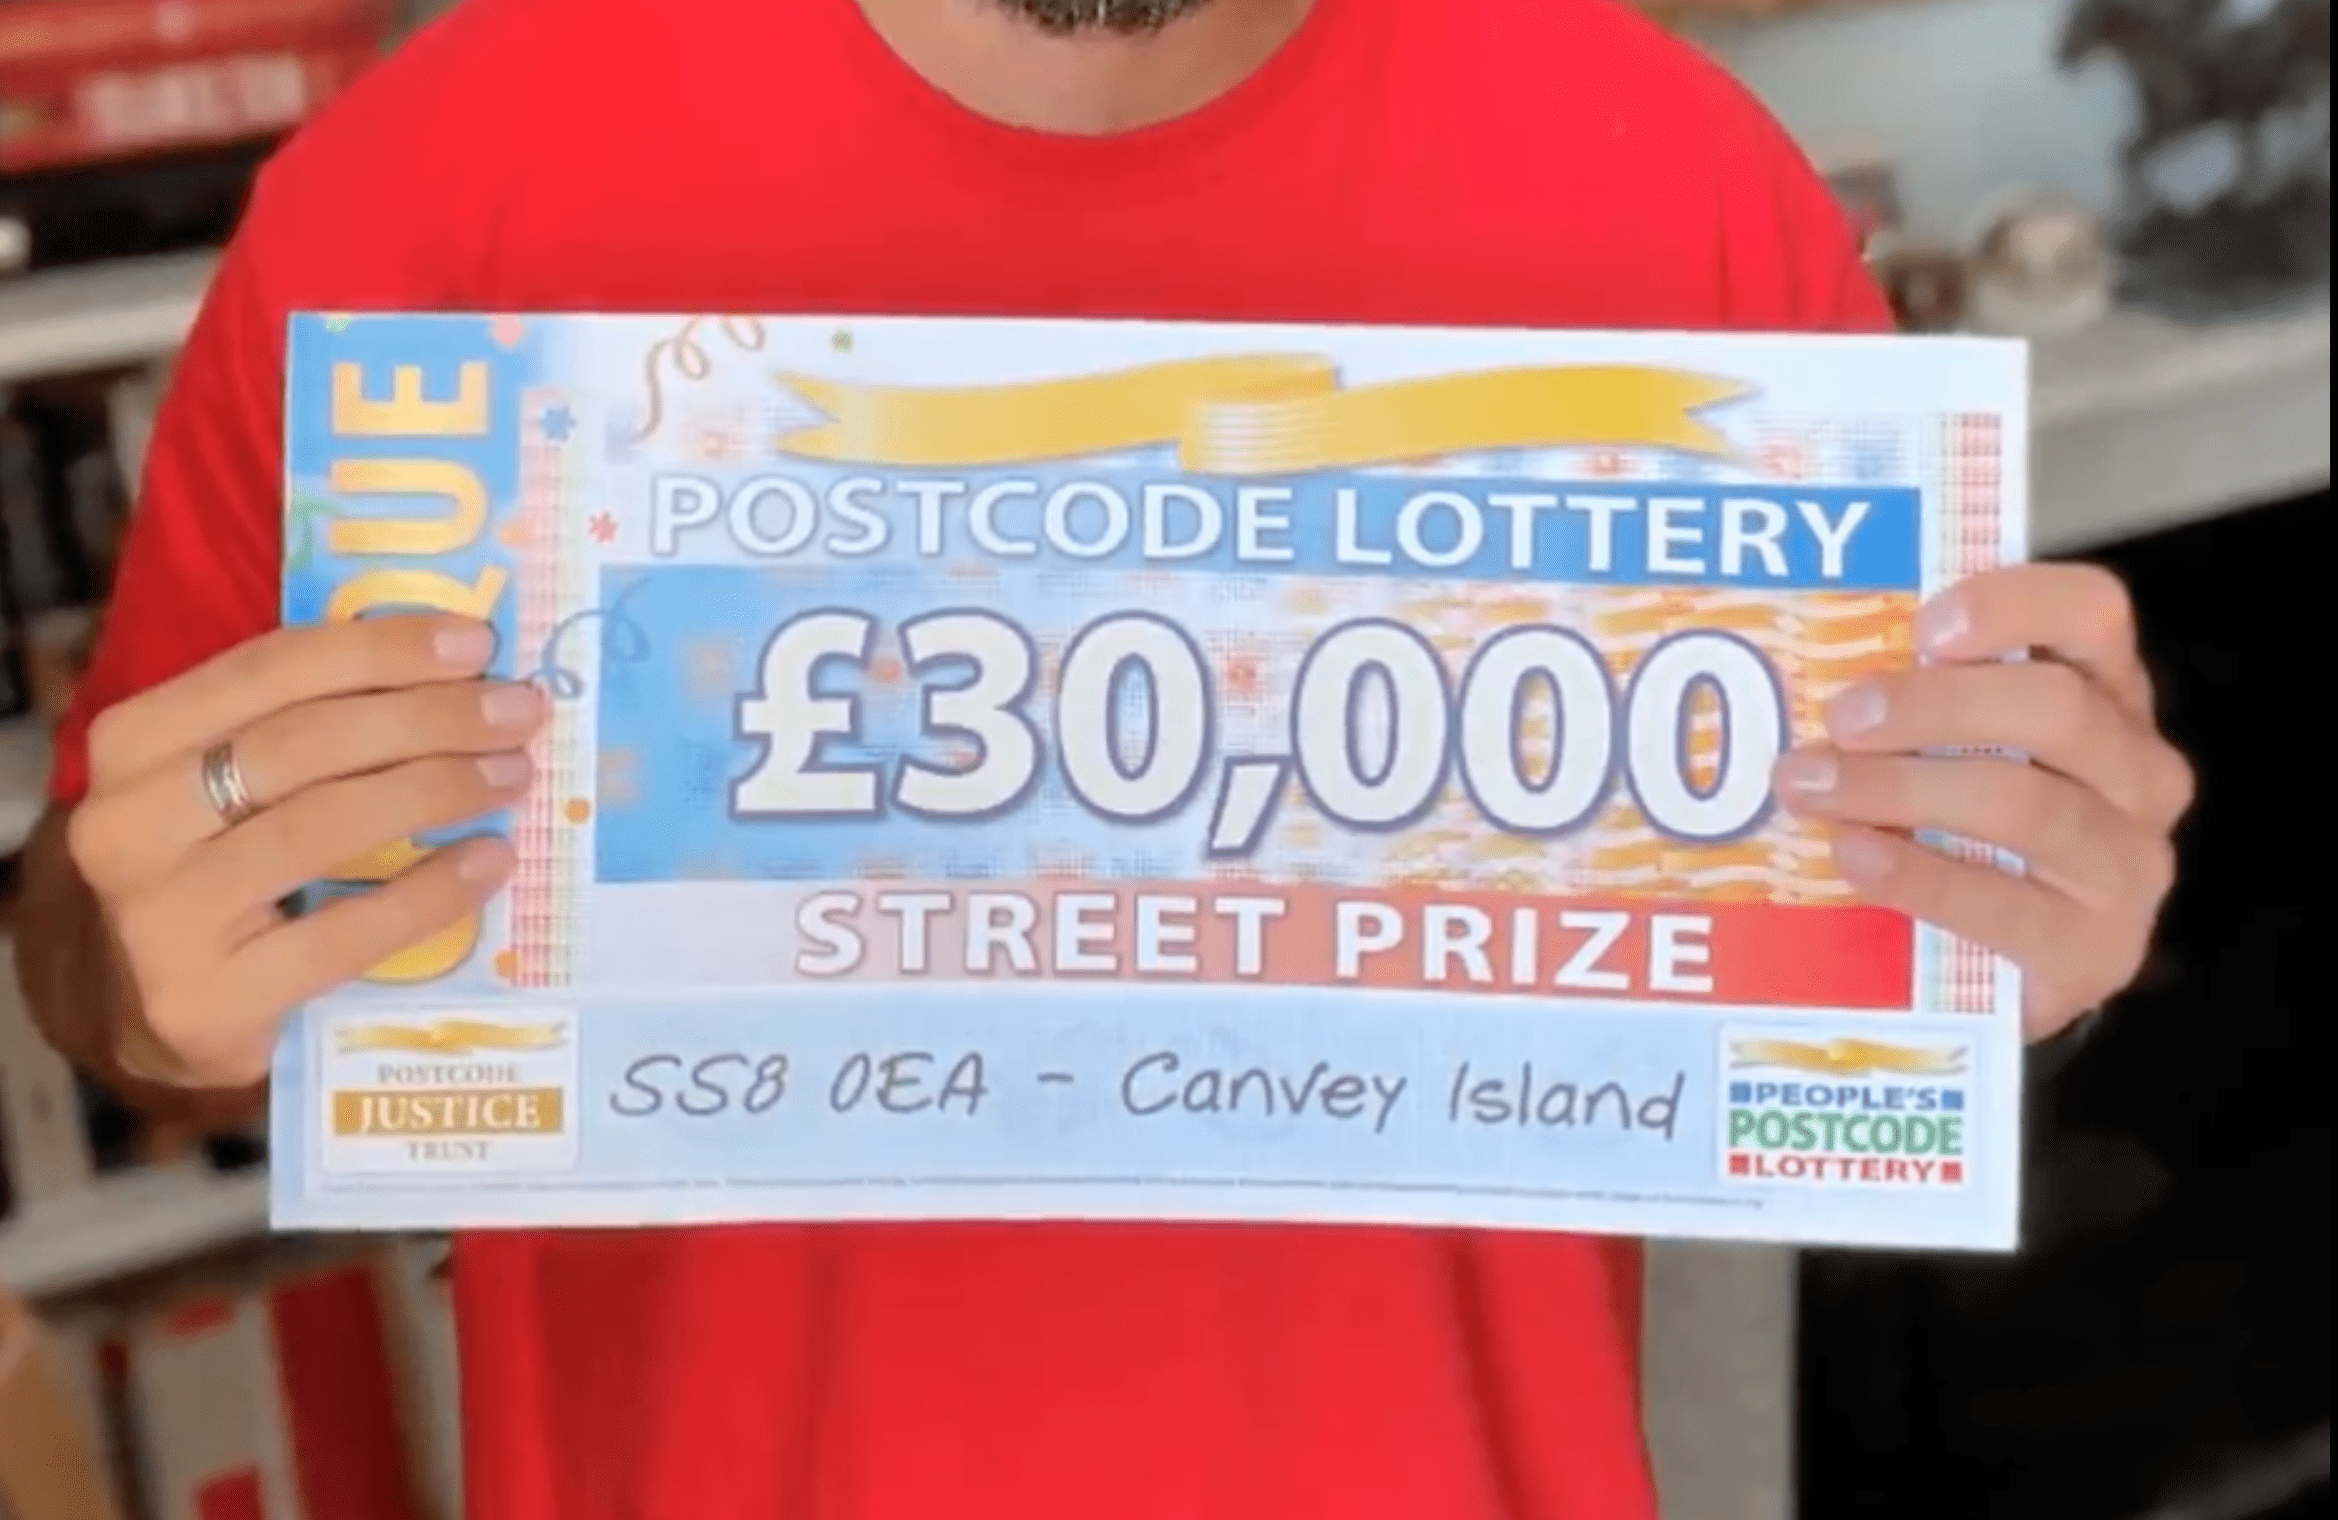 People's Postcode Lottery ambassador holds up a cheque to show a woman that she has won £30,000 (about $41,300) in the lottery   Photo: Twitter/BBCEssex